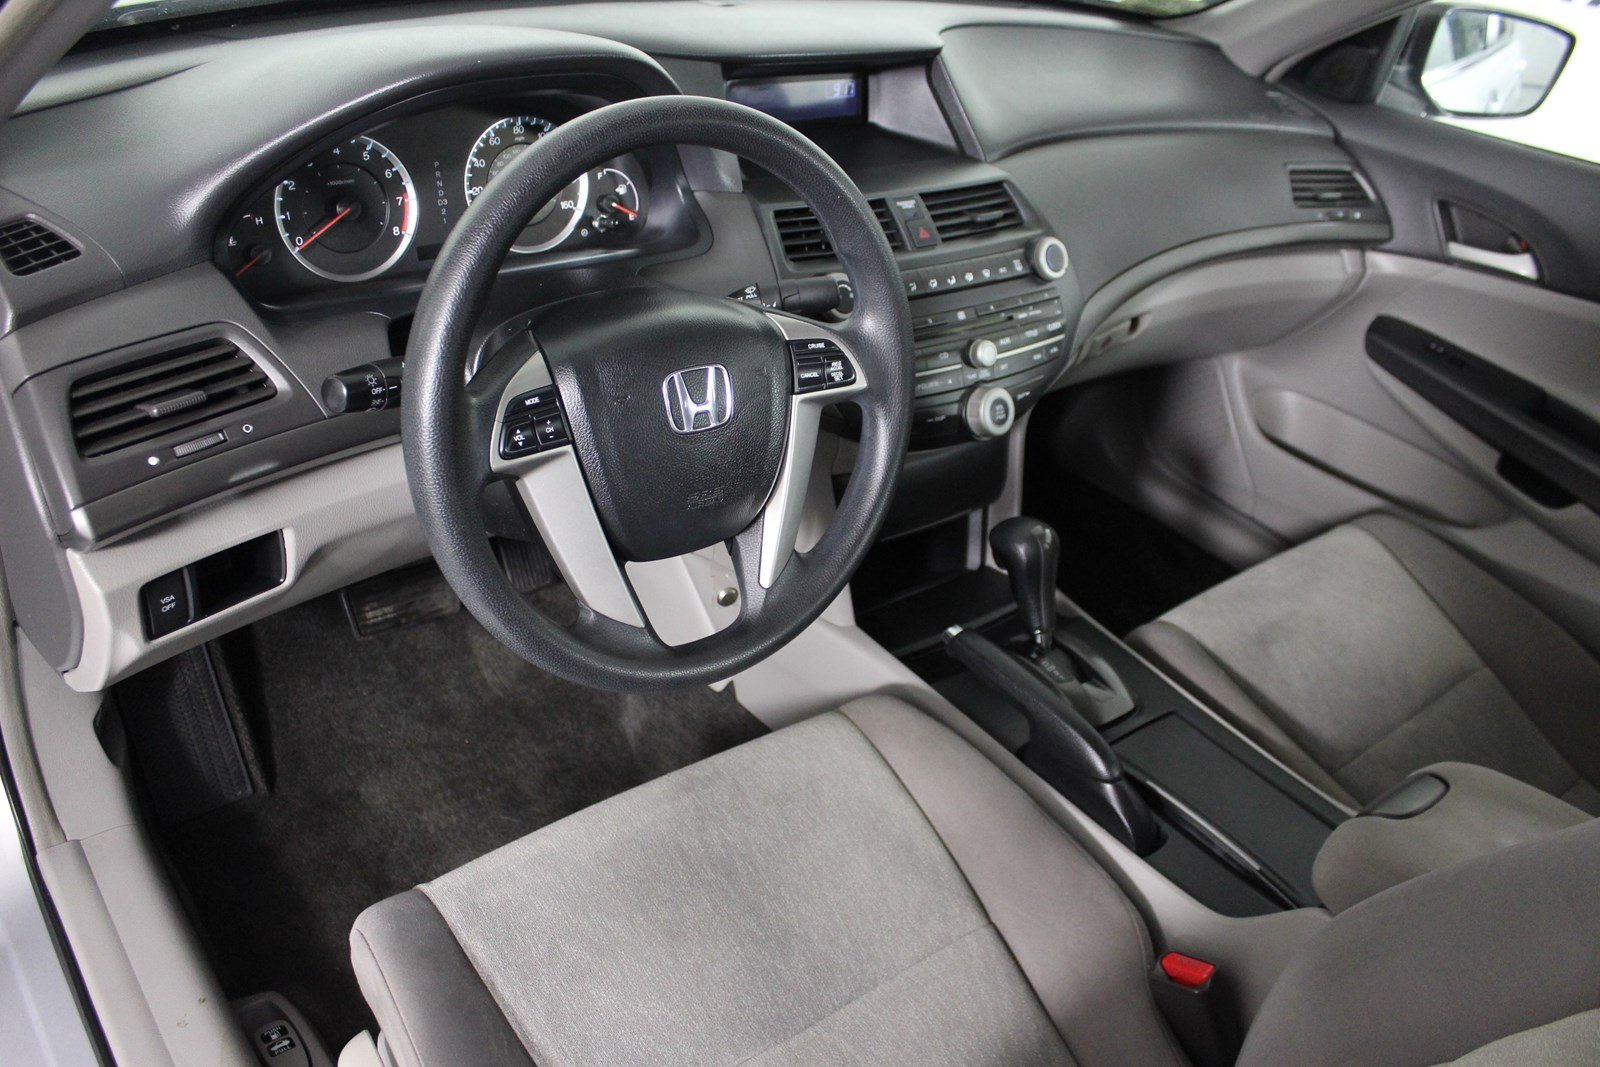 Pre-Owned 2009 Honda Accord LX